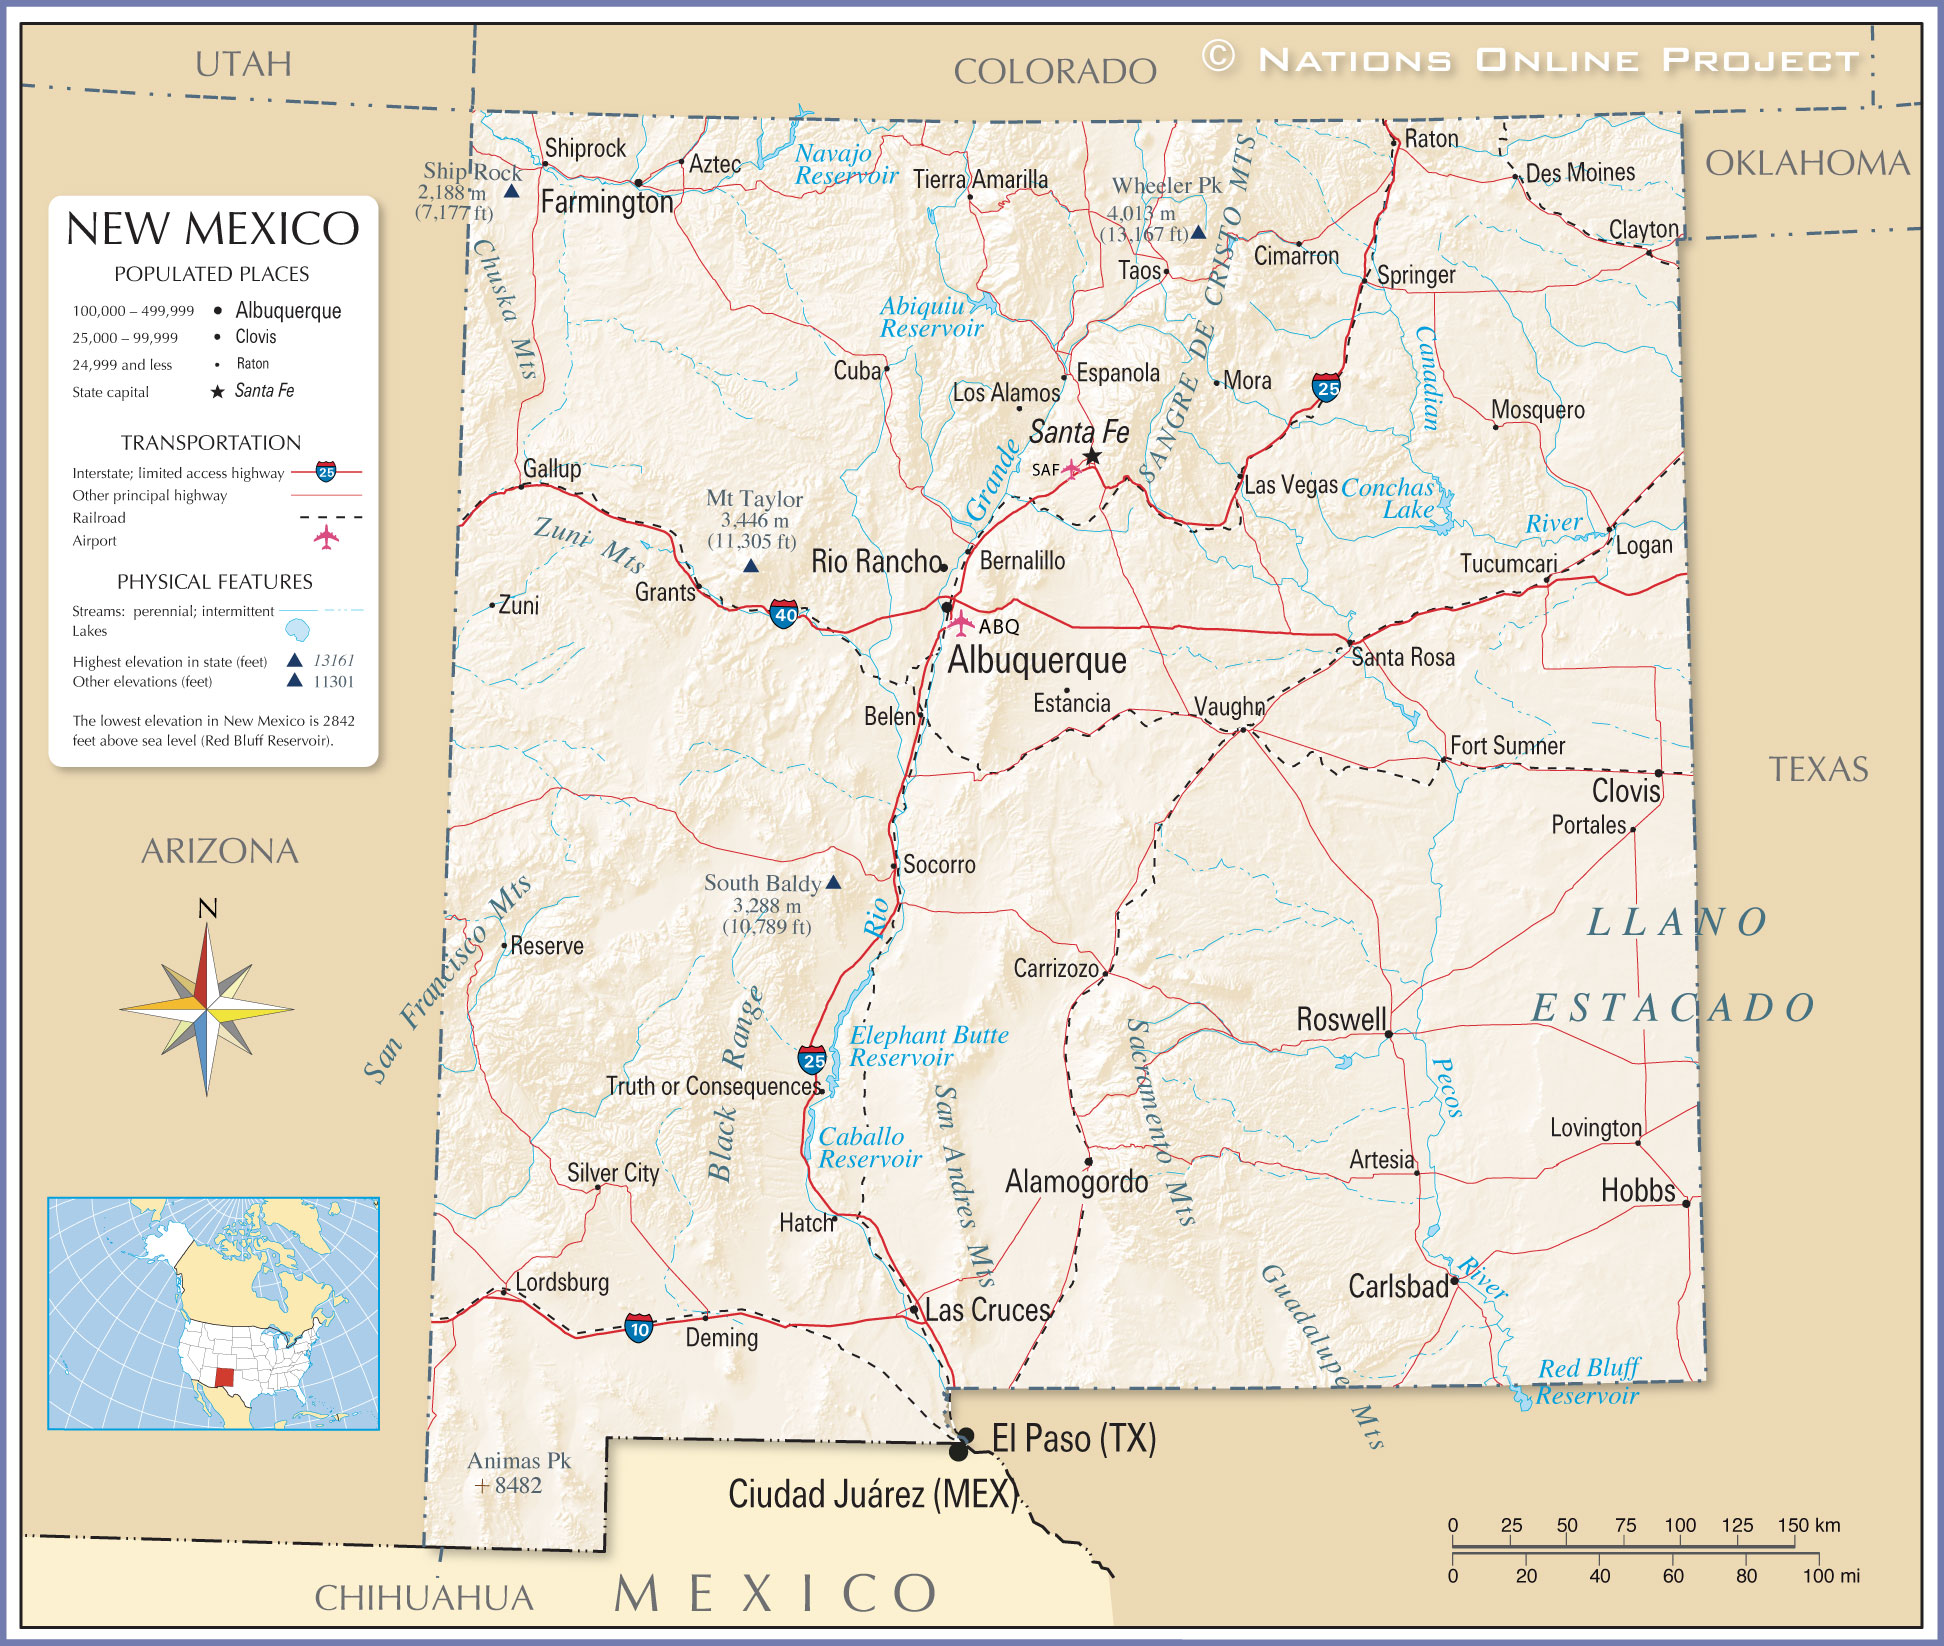 Reference Map Of New Mexico USA Nations Online Project - Nm map